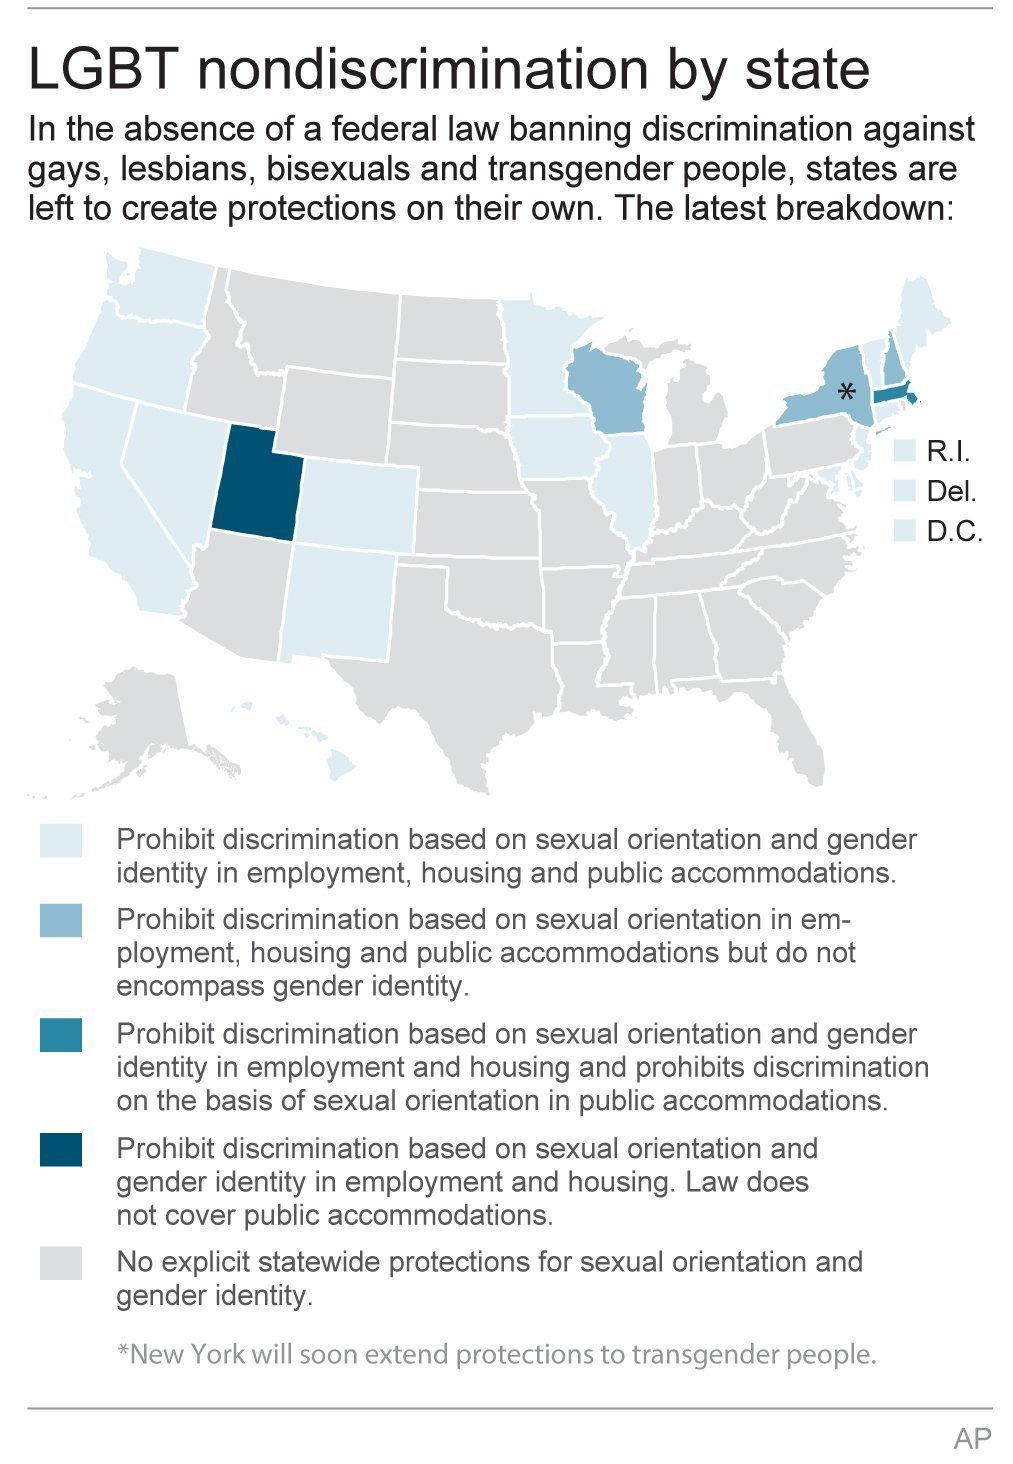 Employment discrimination based on sexual orientation